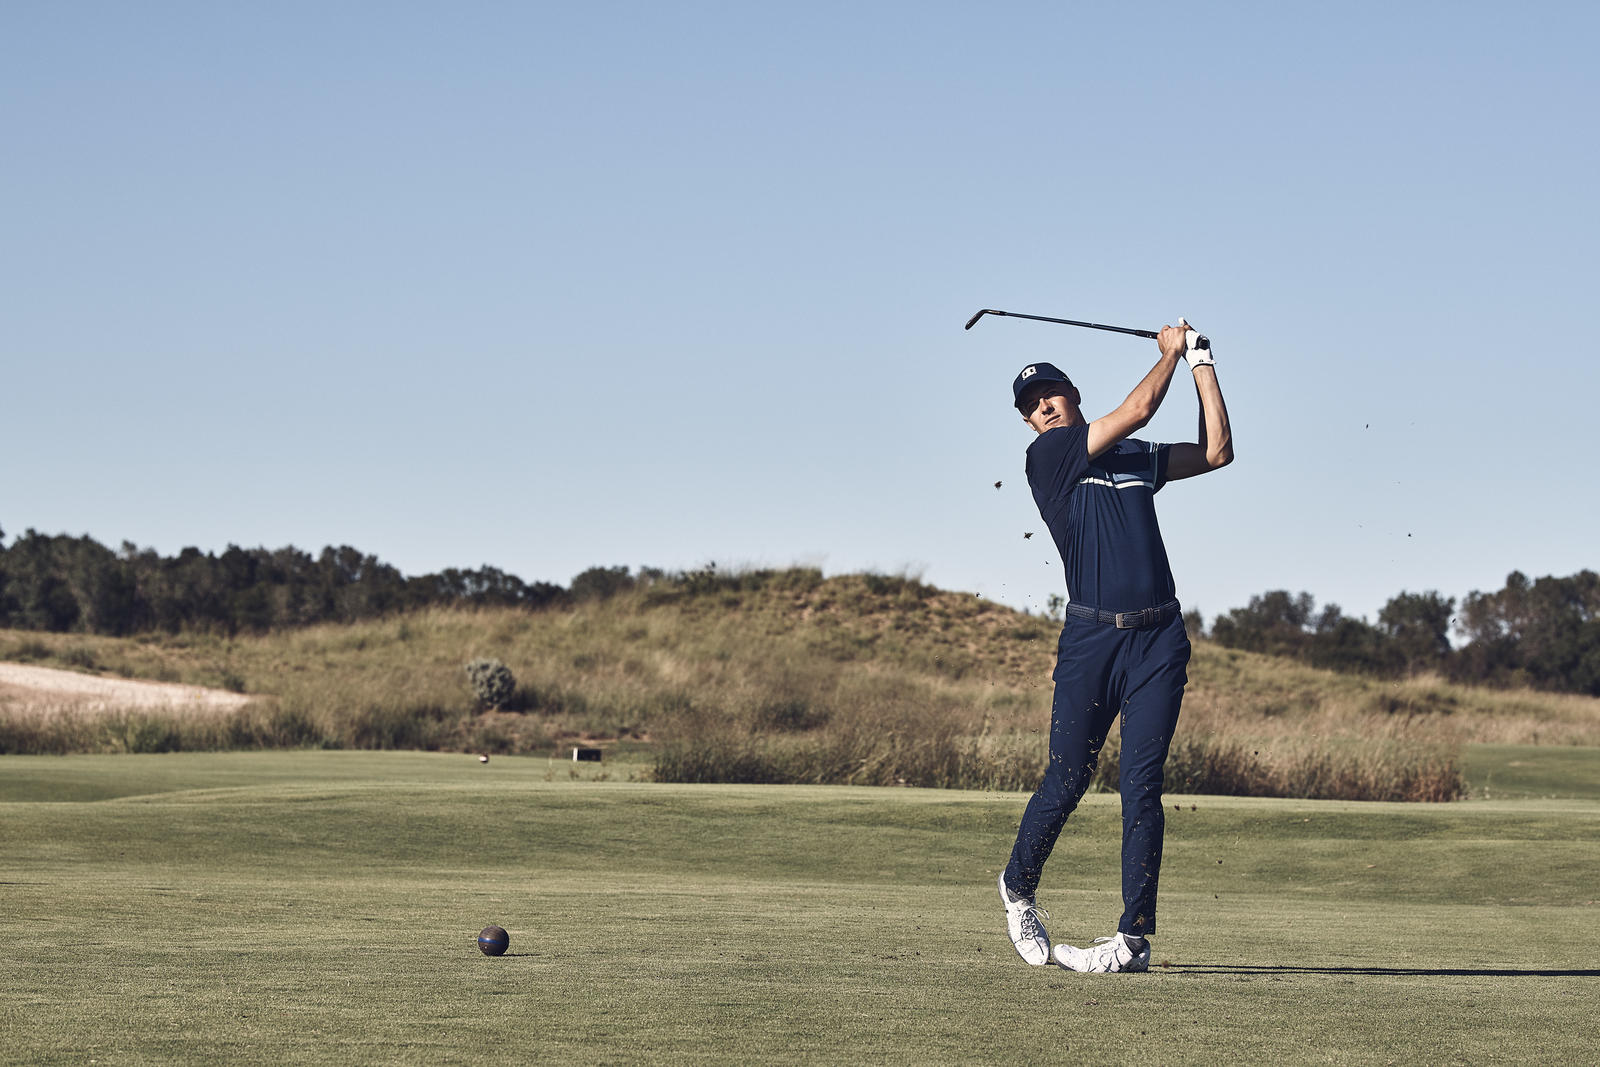 25f733739ae The material in Vanish is powered by the latest micro-thread technology  that removes moisture almost instantly, and will allow Spieth to remain  focused and ...